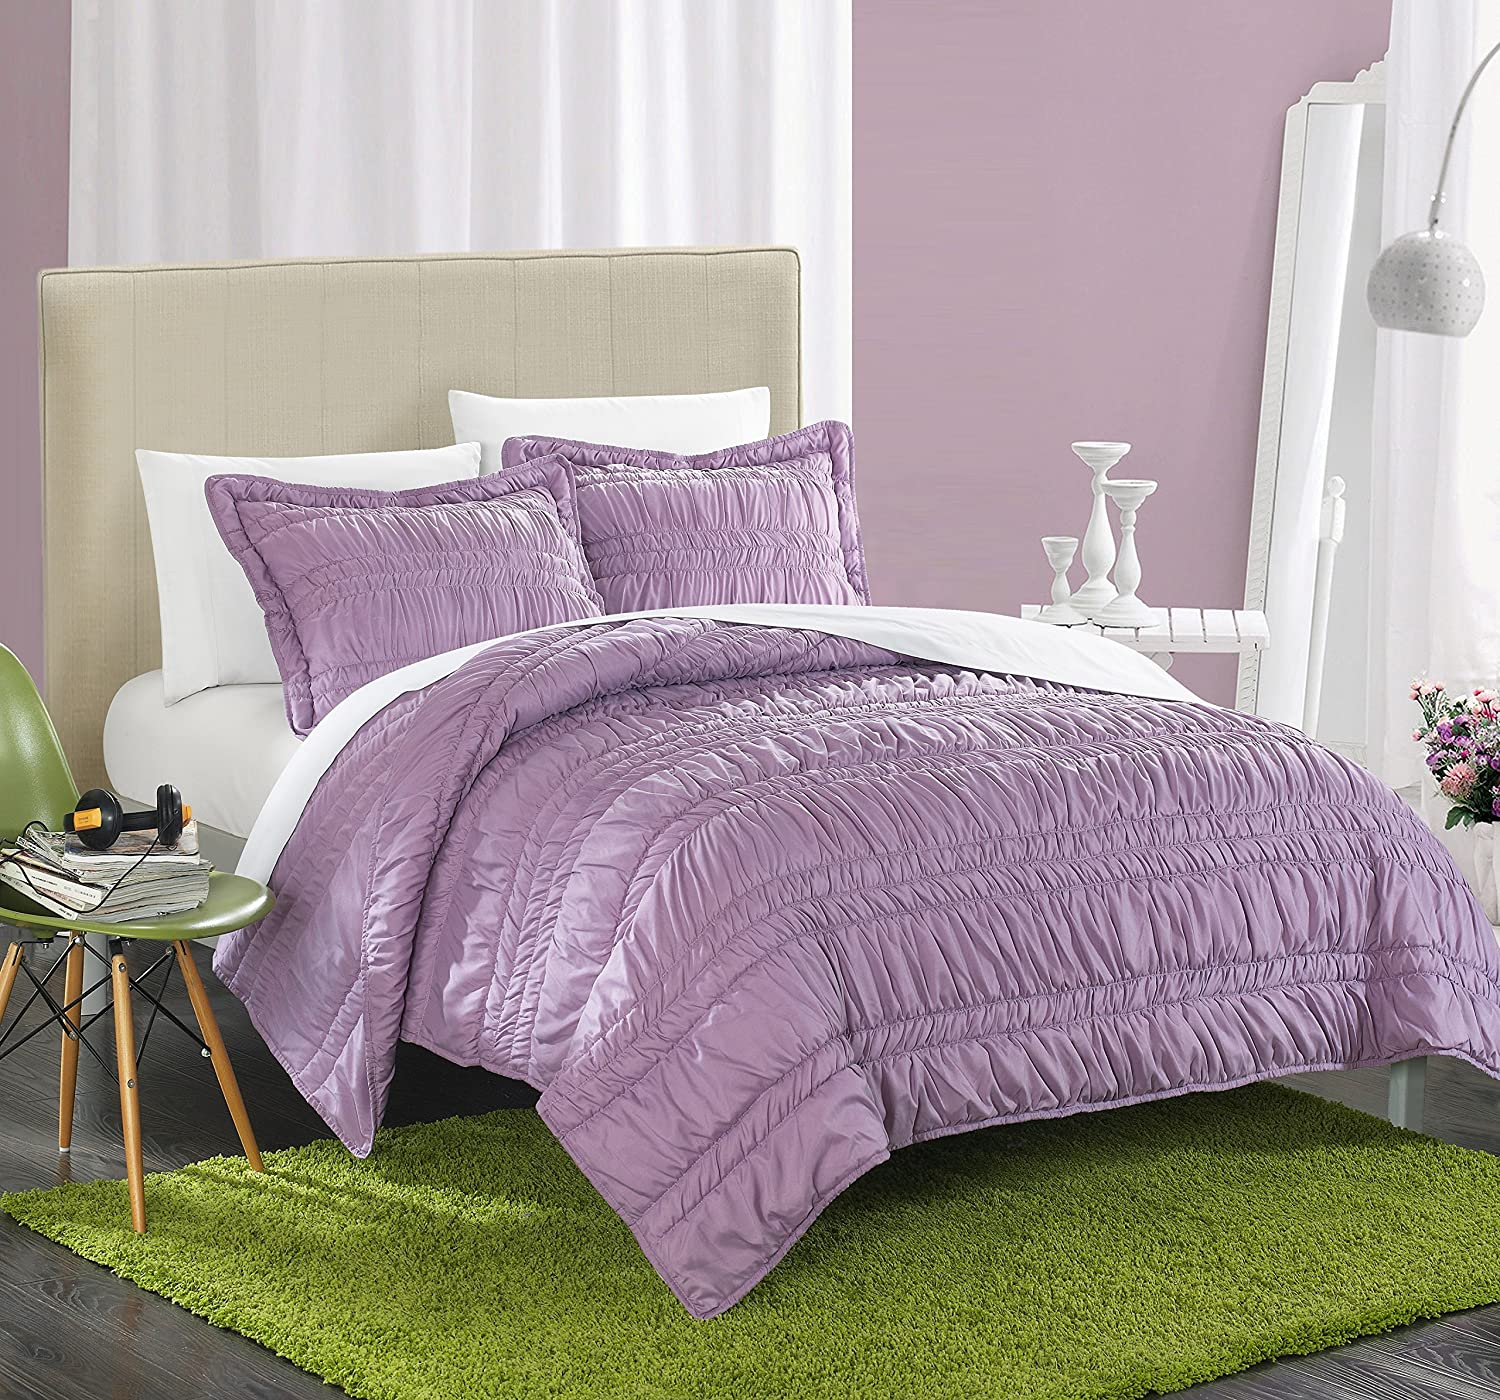 Chic Home 3 Piece Dreamer Super Soft Microfiber Pleated Ruffled Technique Quilt Set, Full, Purple